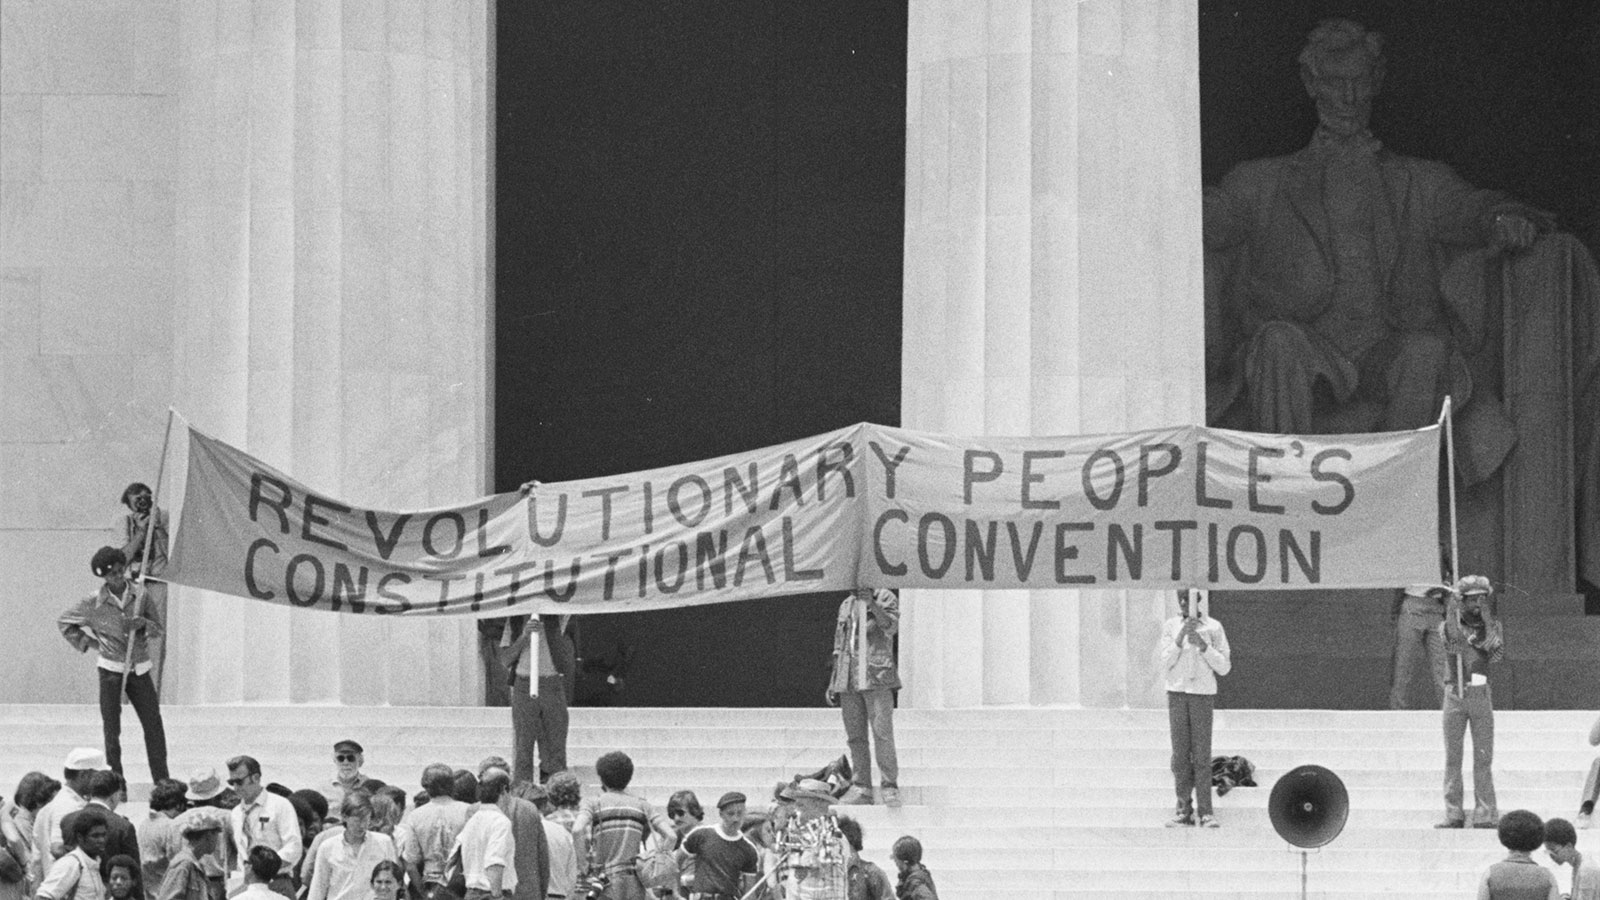 evolutionary People's Constitutional Convention at the Lincoln Memorial on June 19, 1970